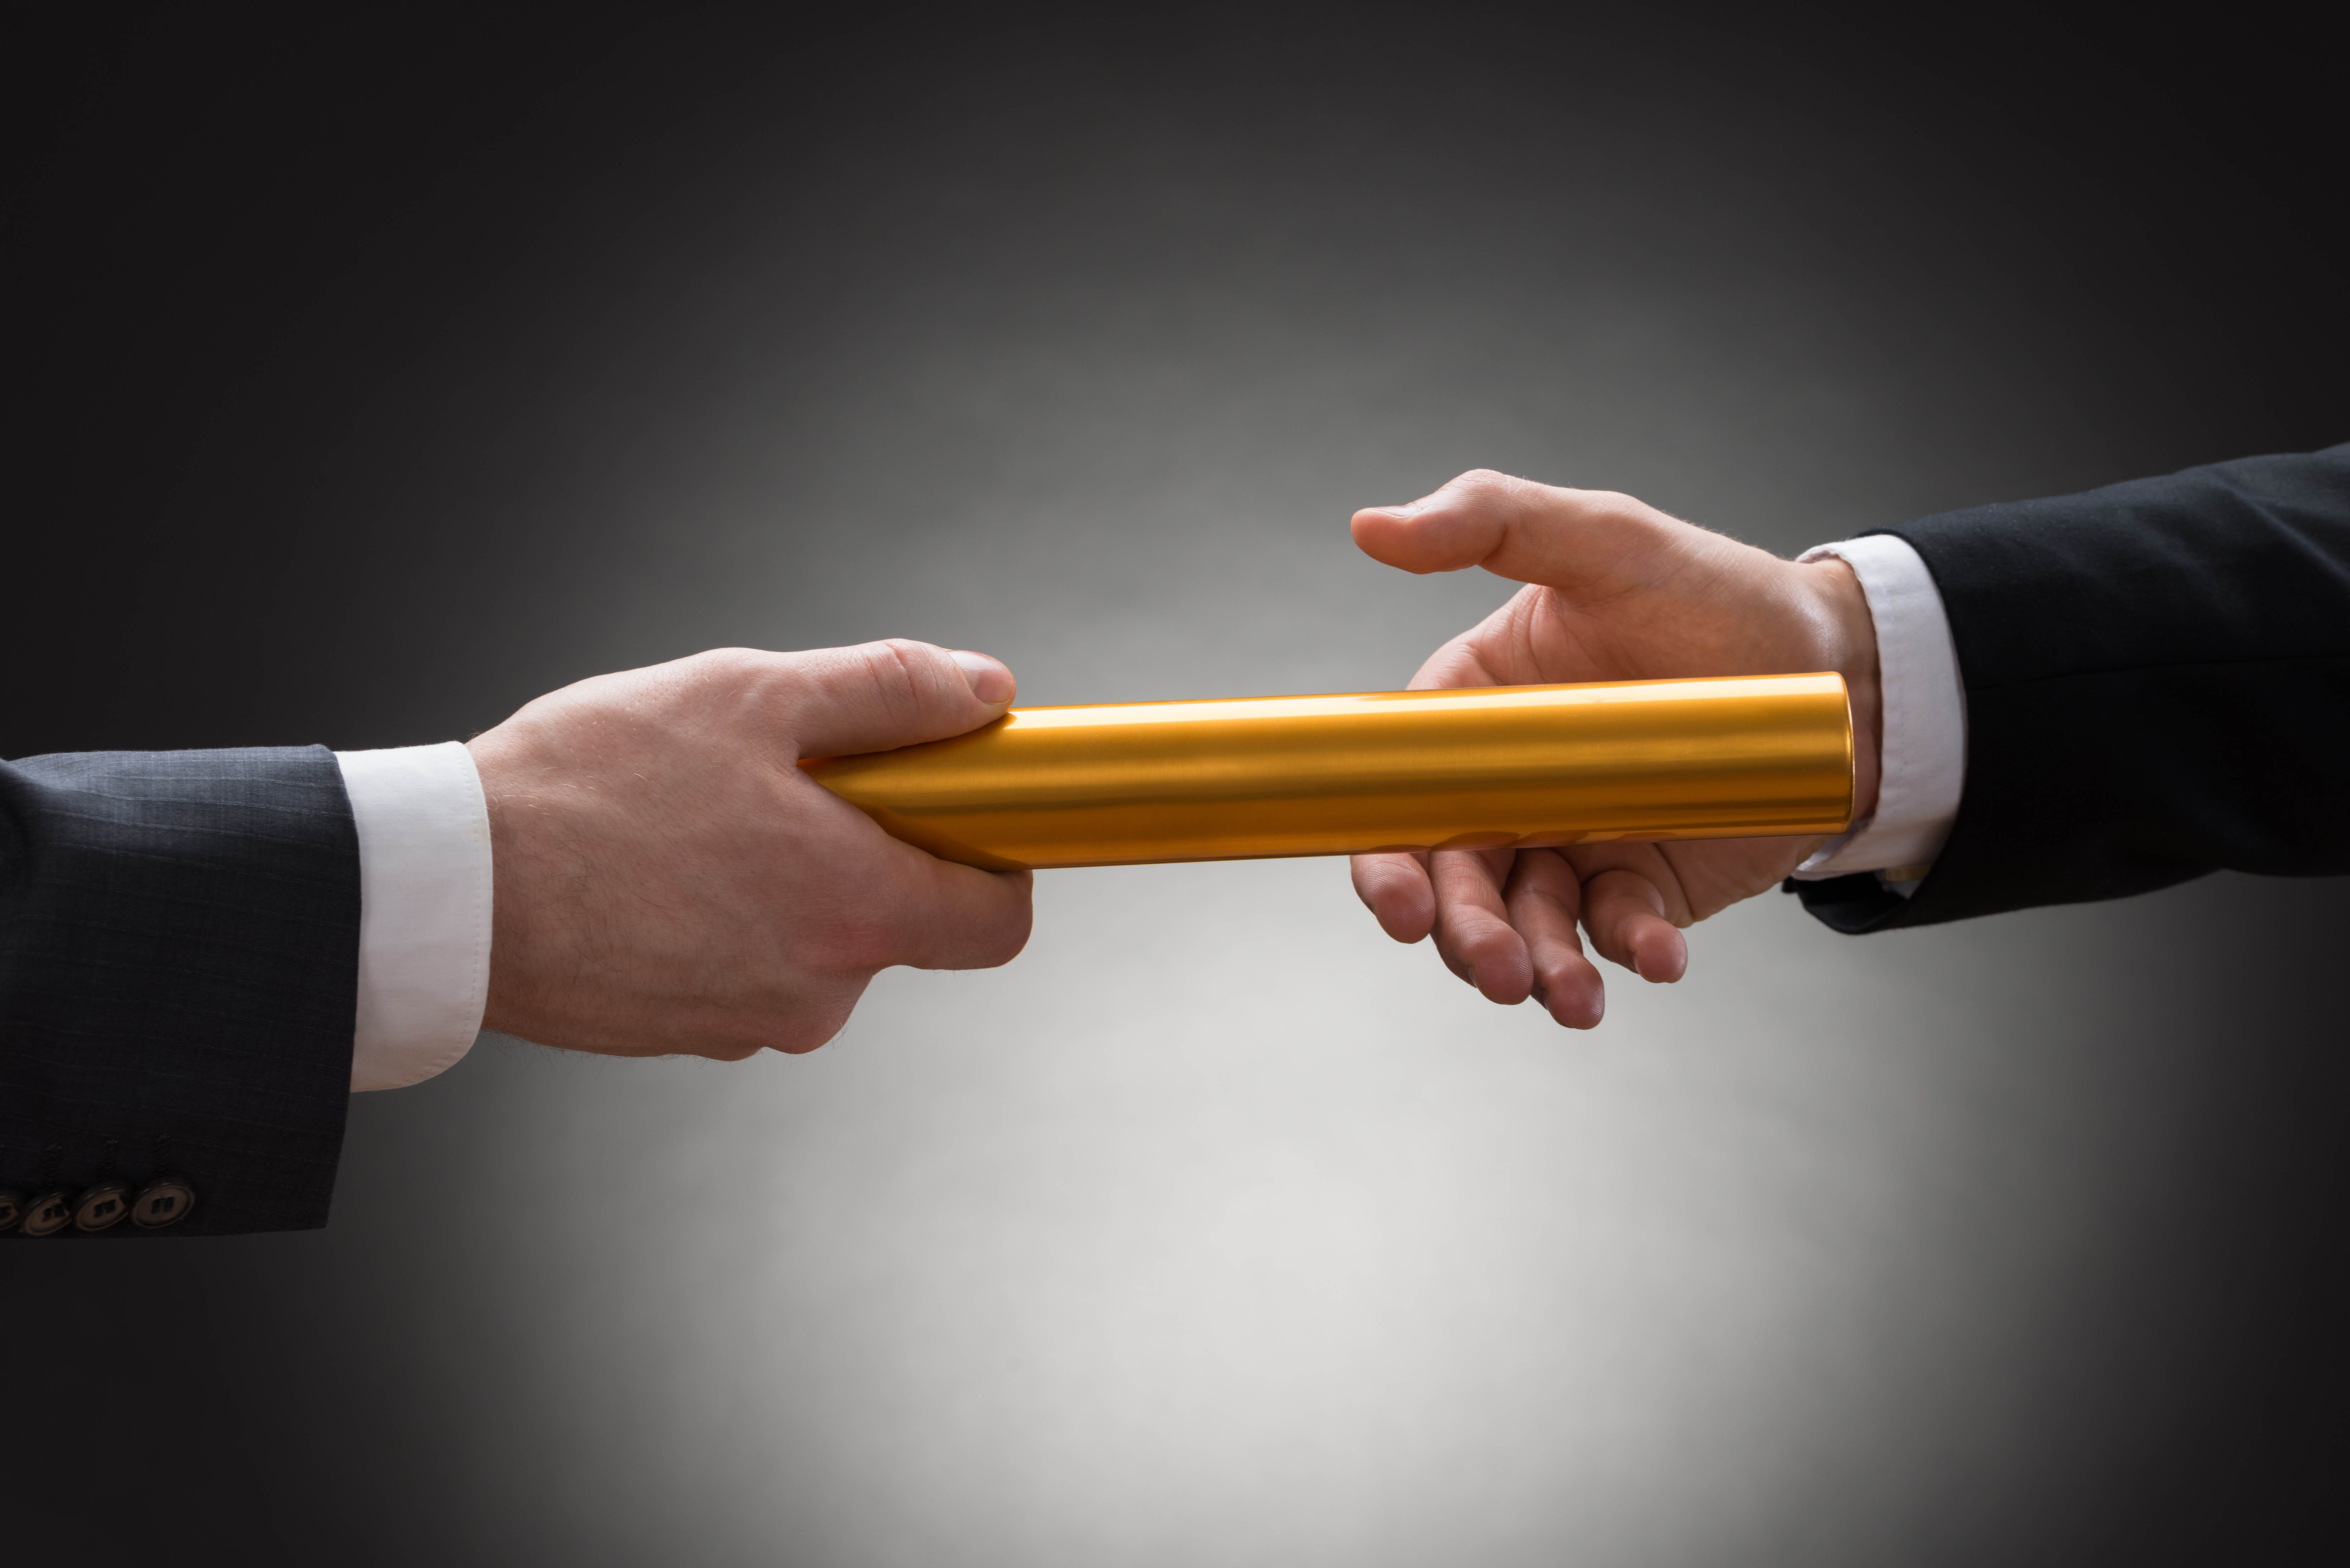 Business owners find it hard to pass the baton and delegate tasks